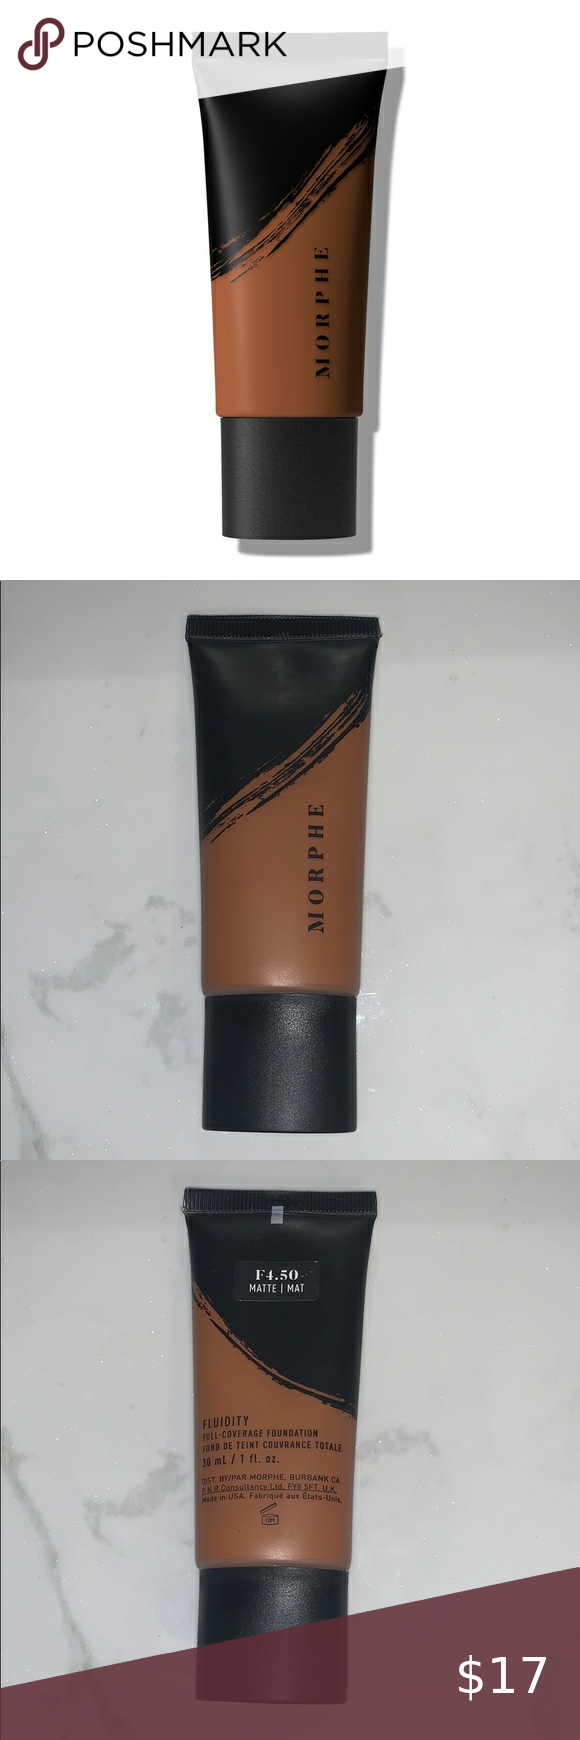 New Morphe Foundation F4.50 in 2020 Makeup foundation